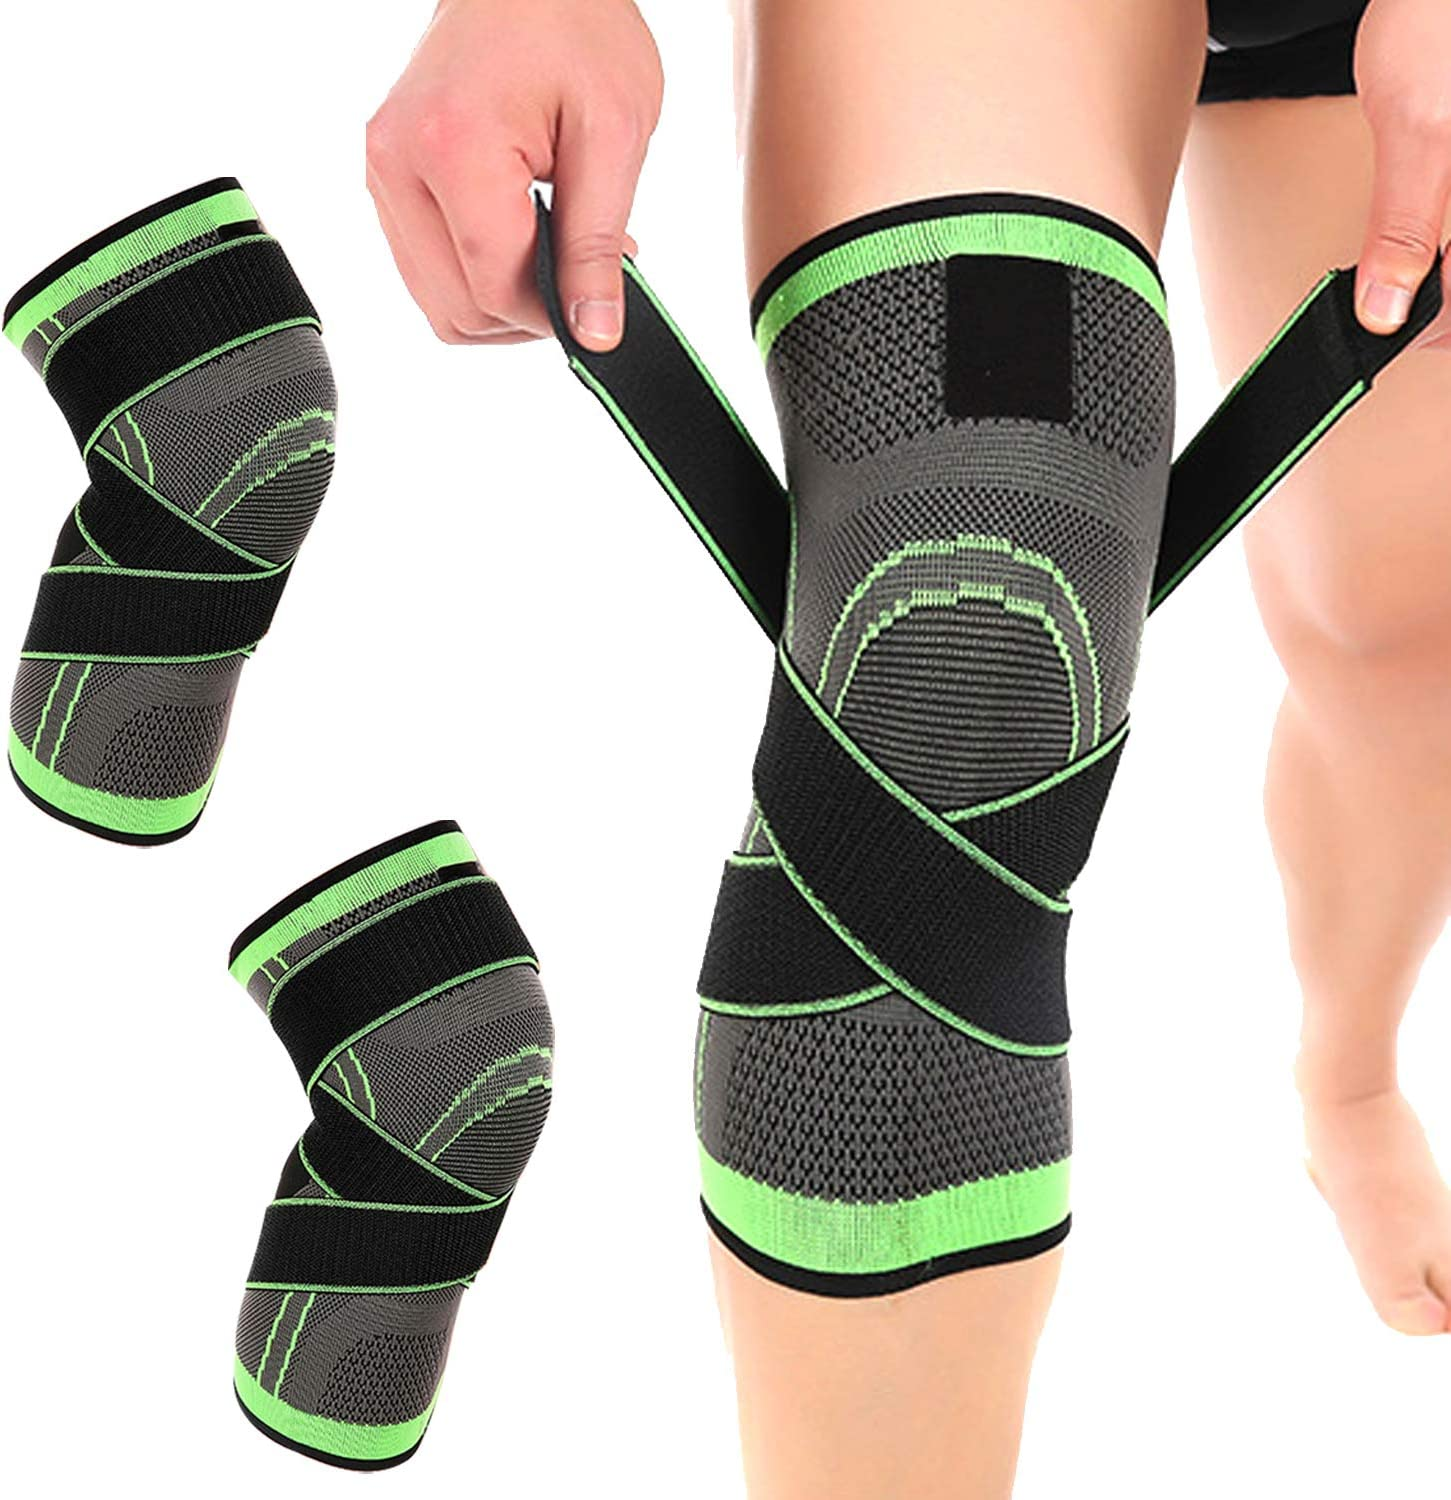 Workout | Best X-Band Knee Brace for Men /& Women Sports Sports Knee Compression Sleeve Gym Weightlifting Green, L Basketball Knee Support for Running Baseball 2 Pack